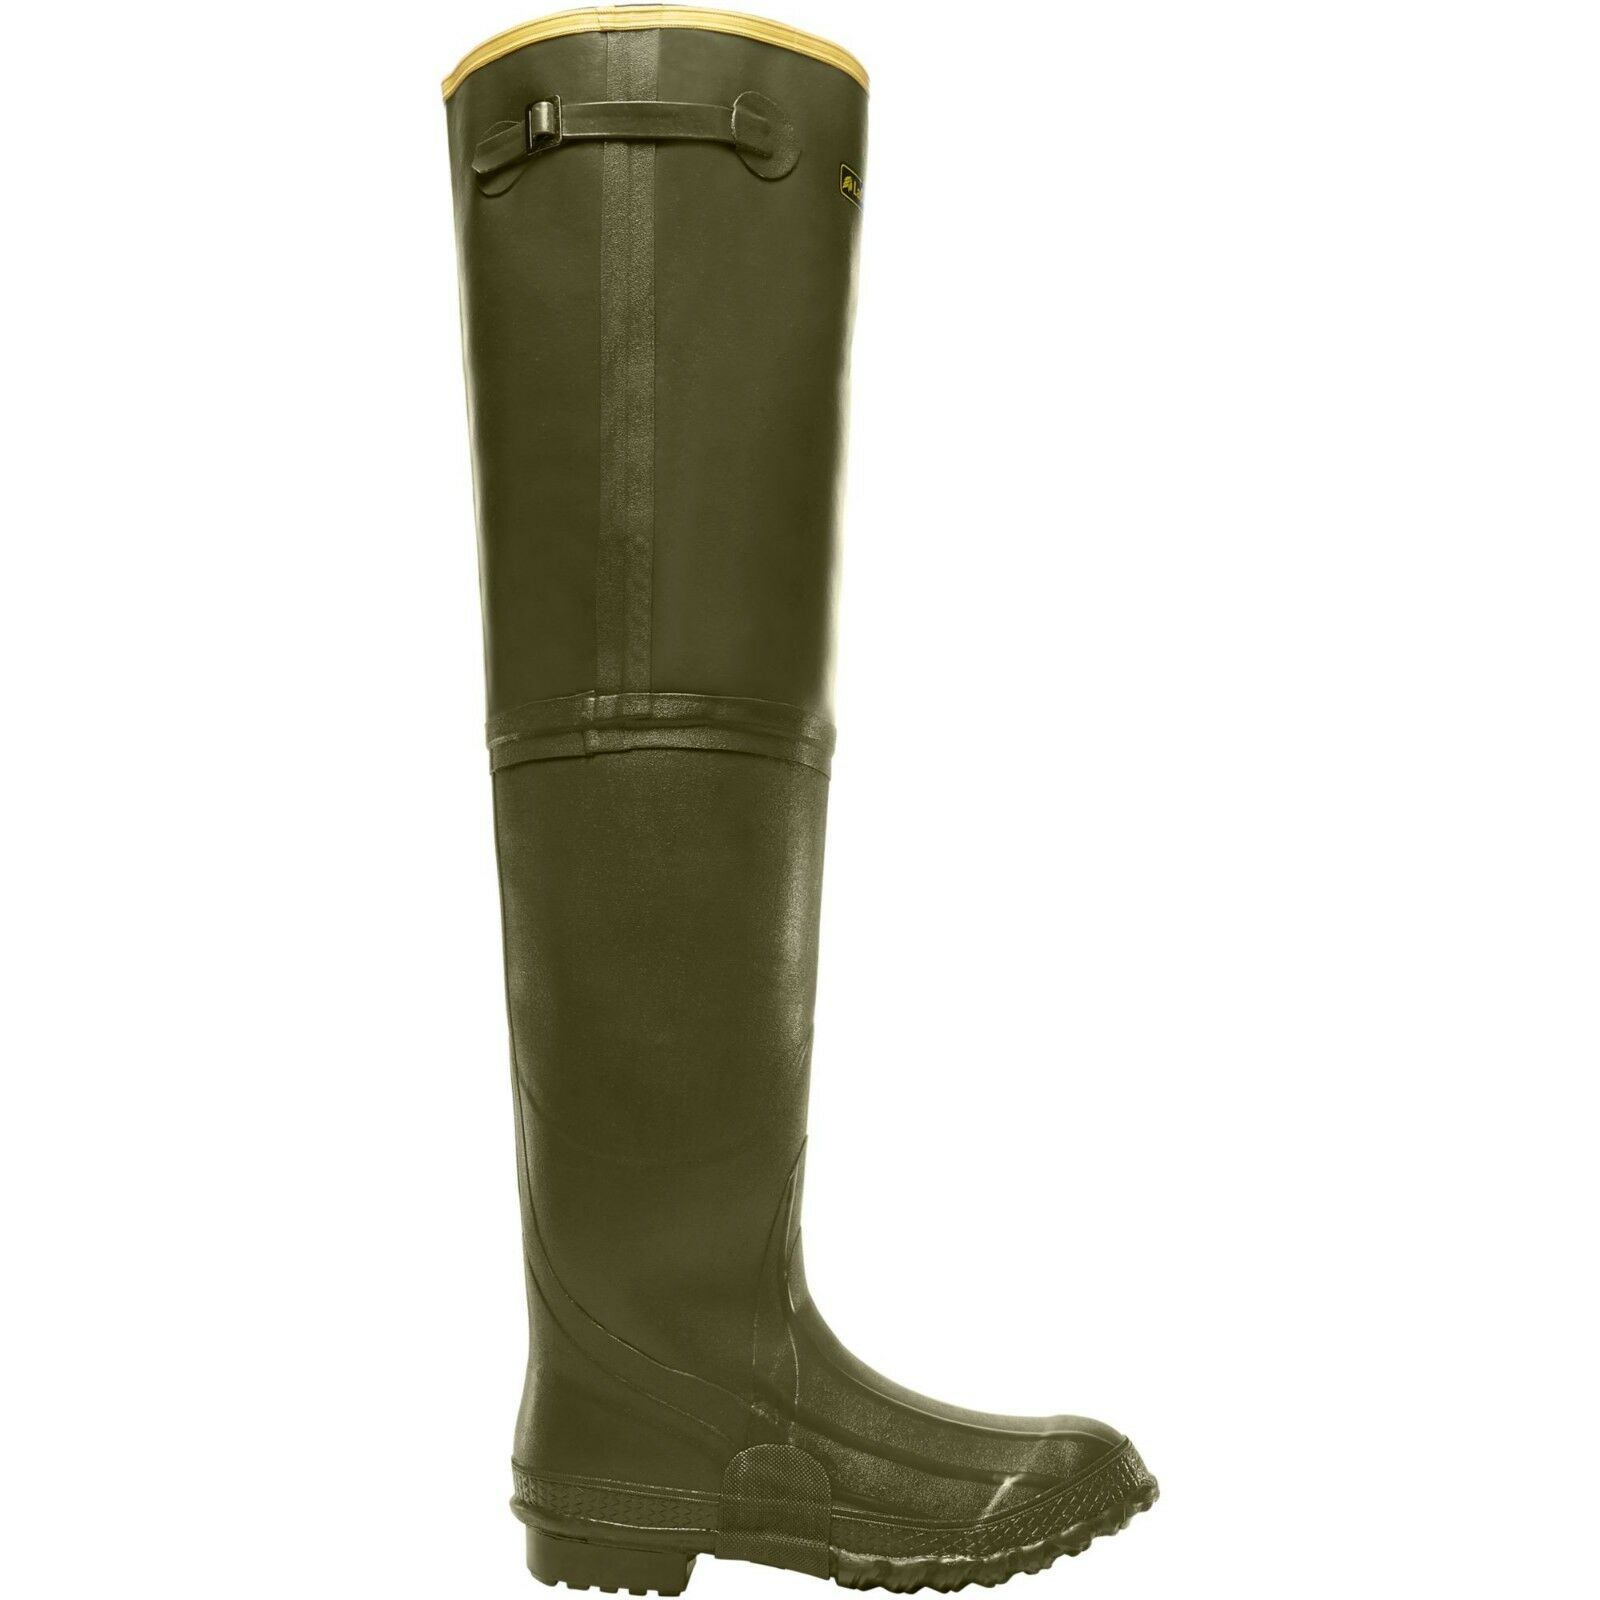 LaCrosse Rubber Boot 267260 ZXT Irrigation Hip 26  Waterproof Green Work